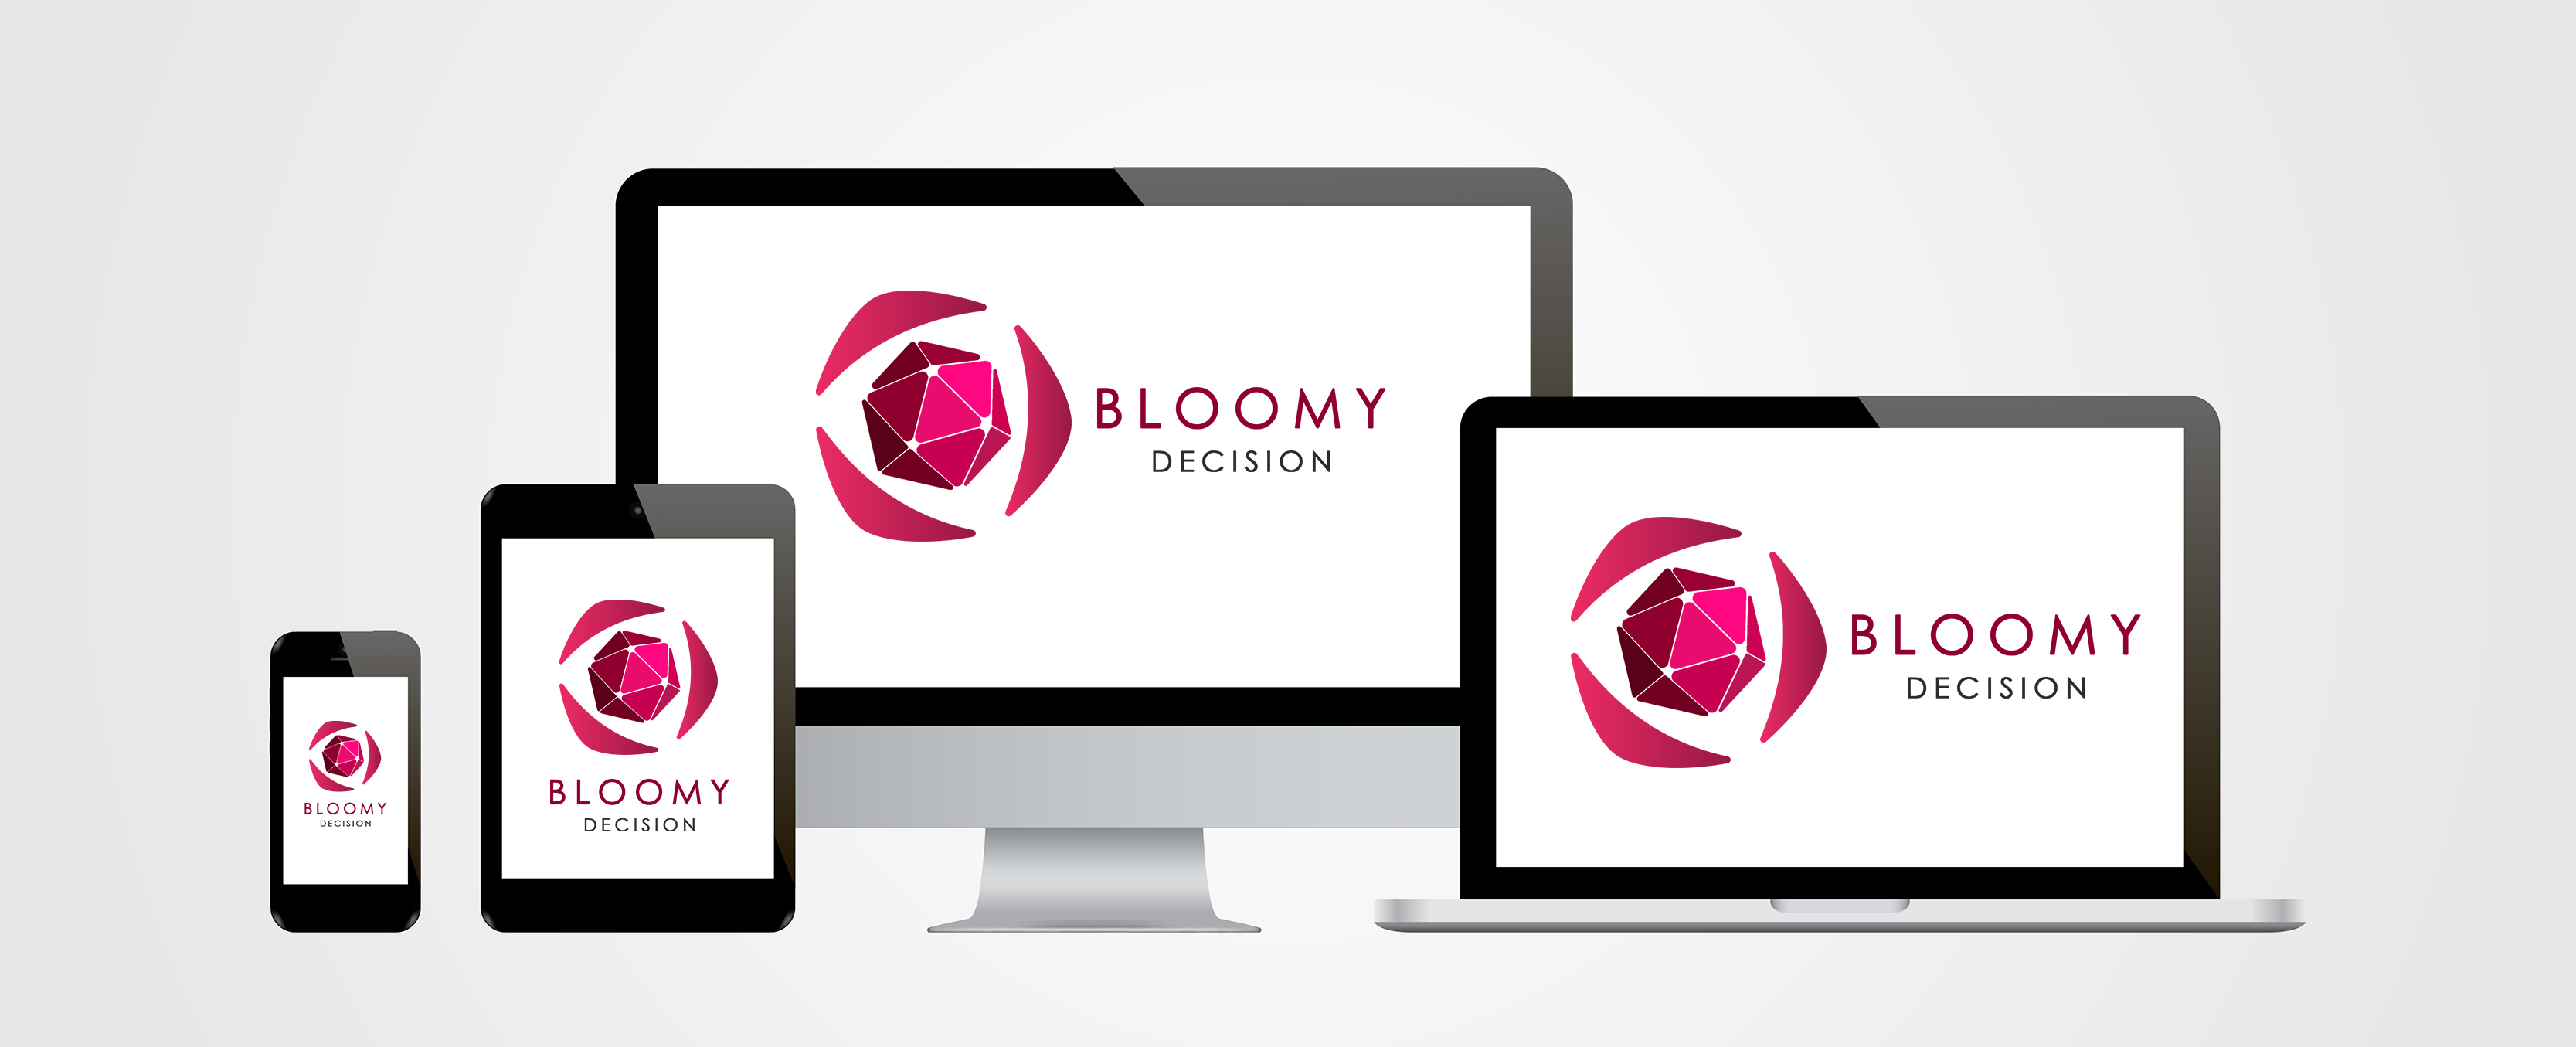 Bloomy Decision Platform on several Device by ACT OR